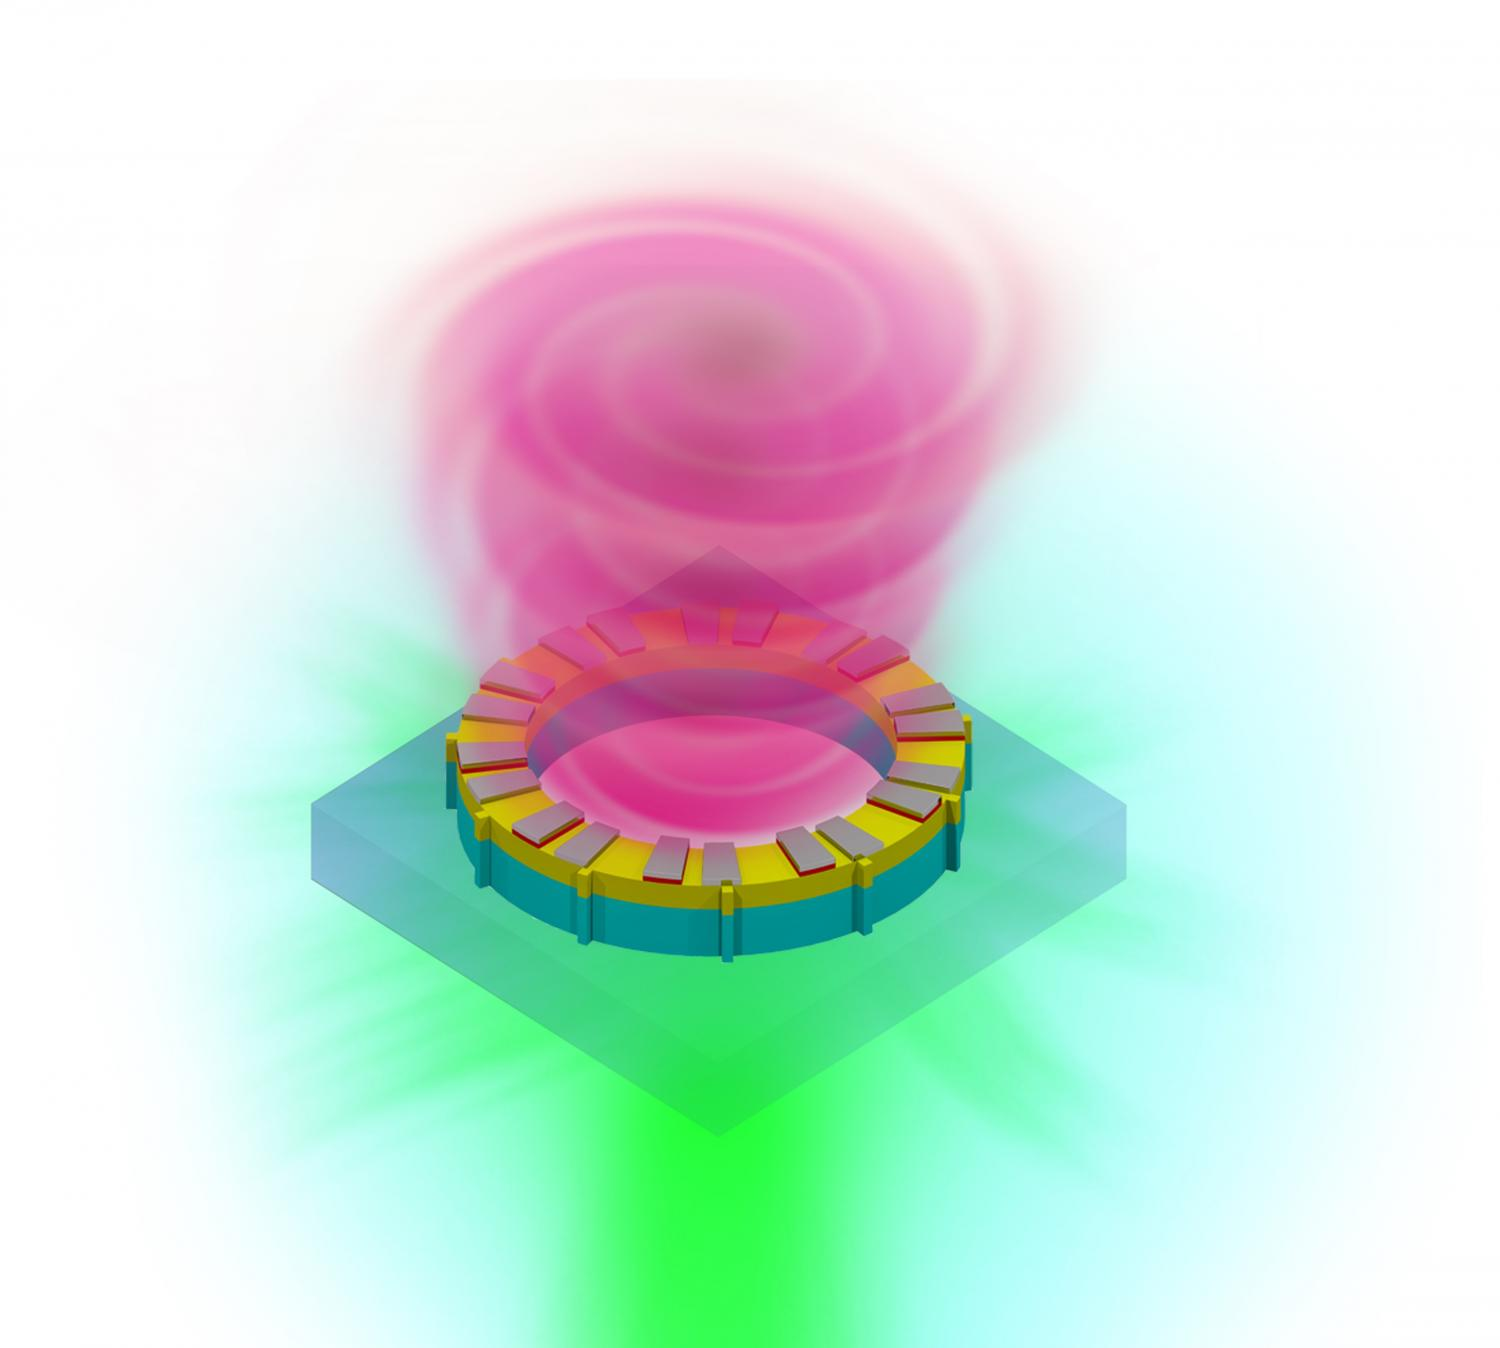 Vortex Laser Offers Hope For Moores Law Circuit Has A Pair Of Emitting Diodes And Receiver